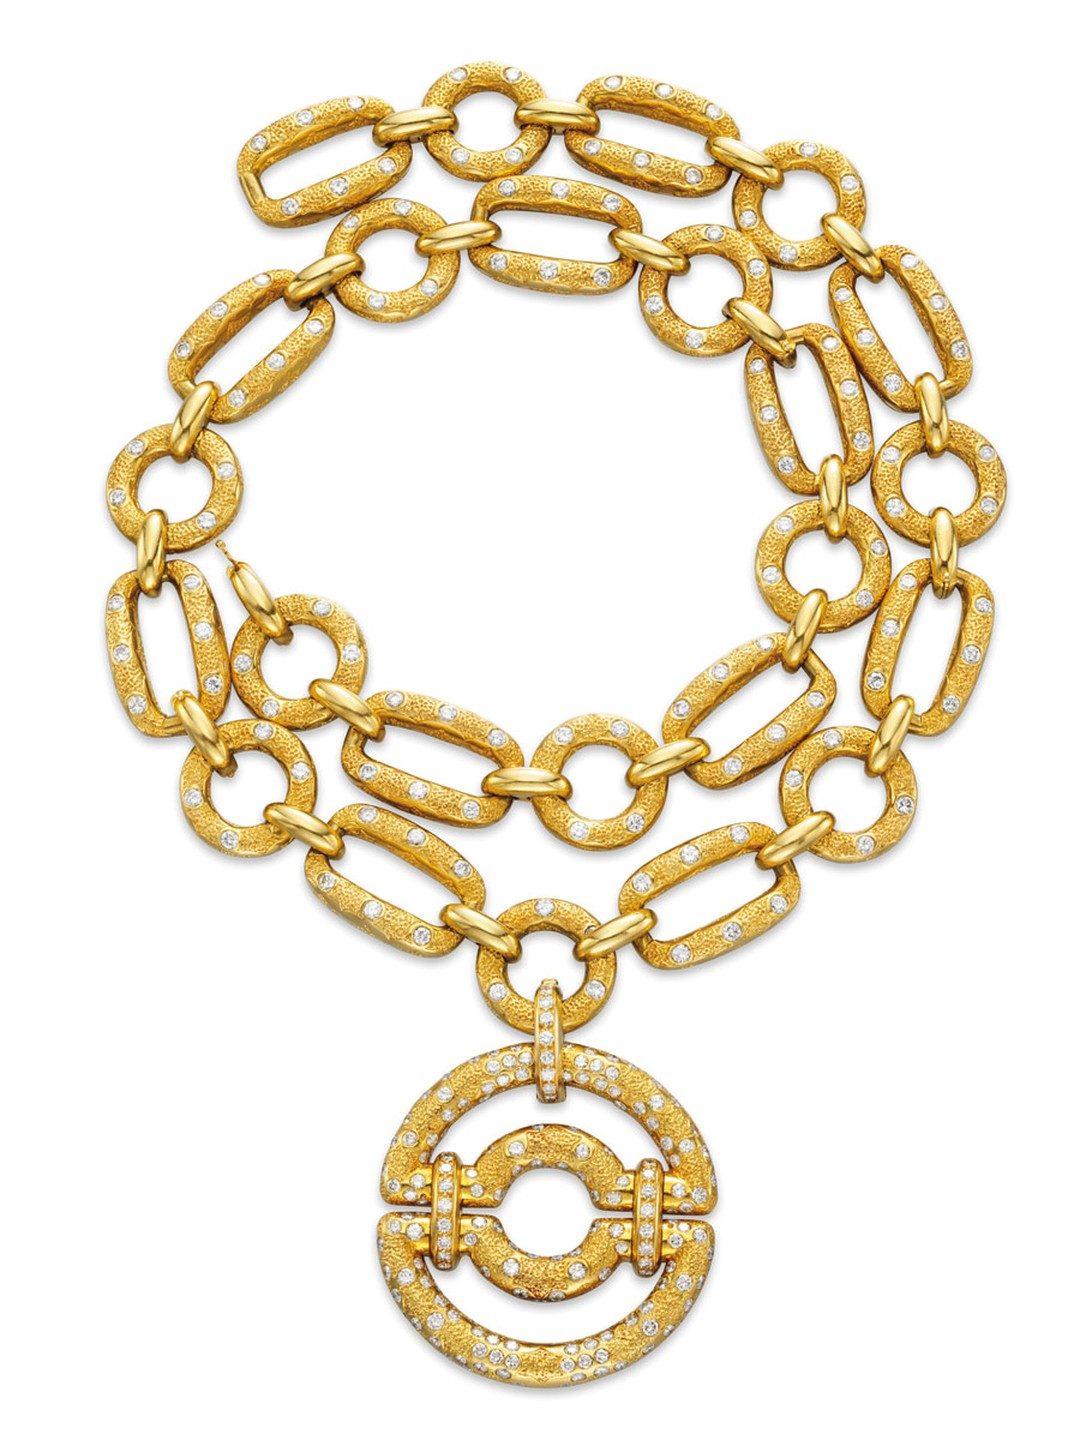 Van-Cleef-Arpels-Sevres-necklace